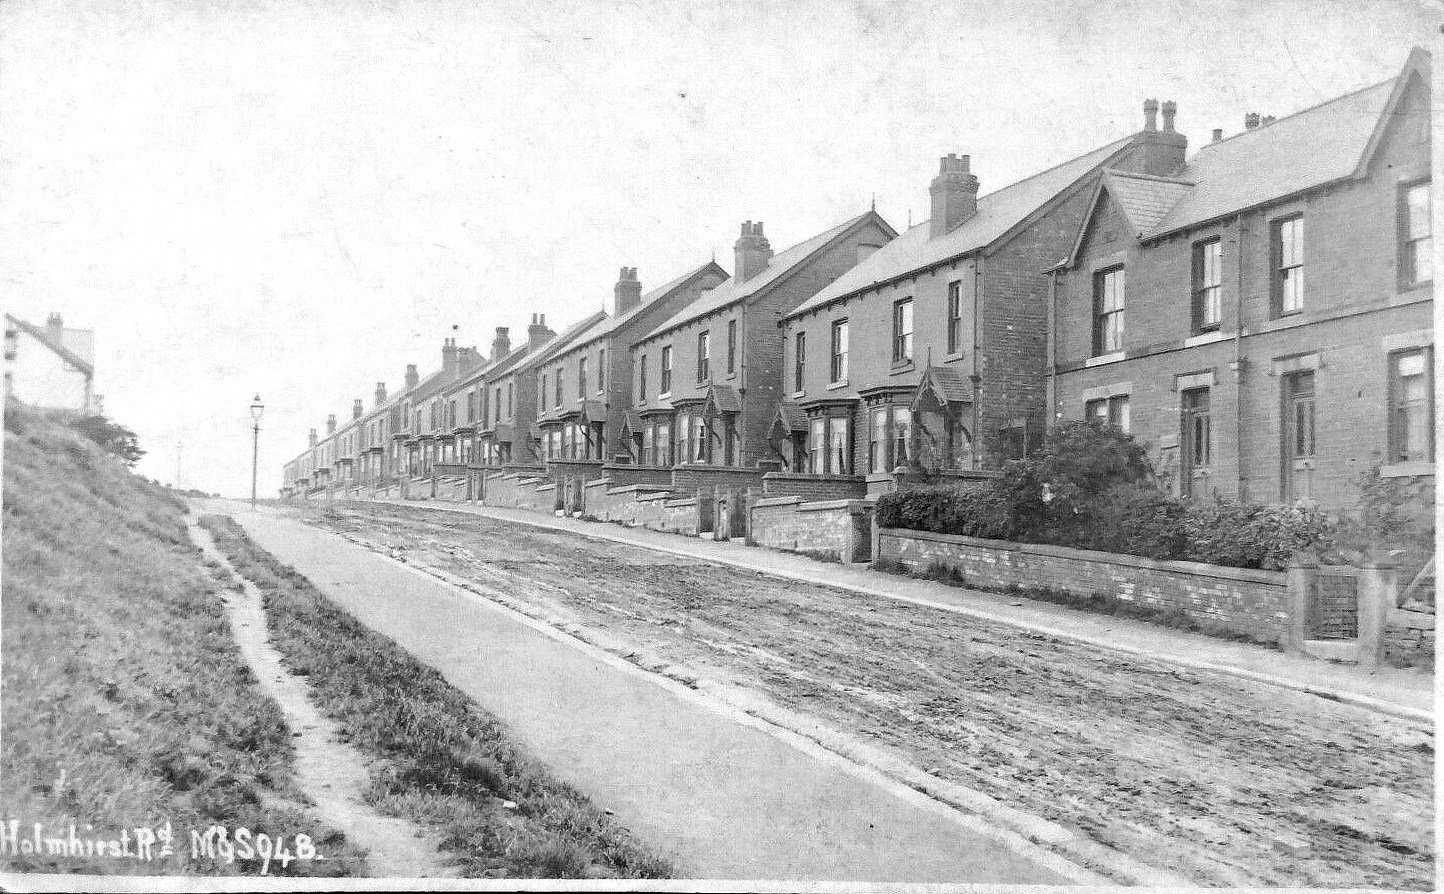 Holmhirst Road, Then and Now From an Ebay Postcard.